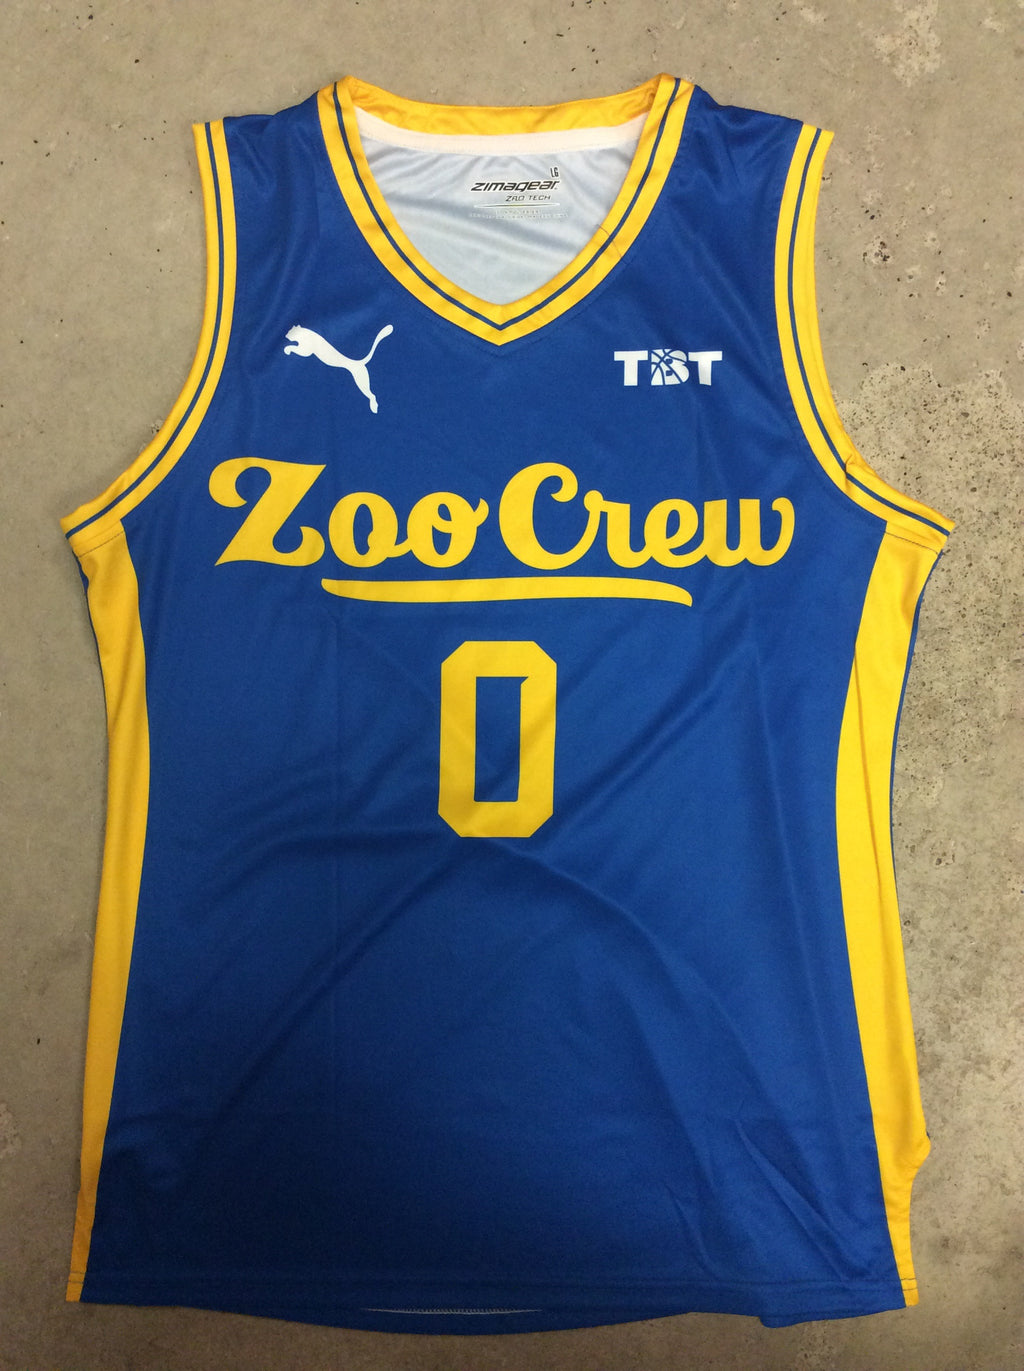 Zoo Crew - 2018 Official Jersey